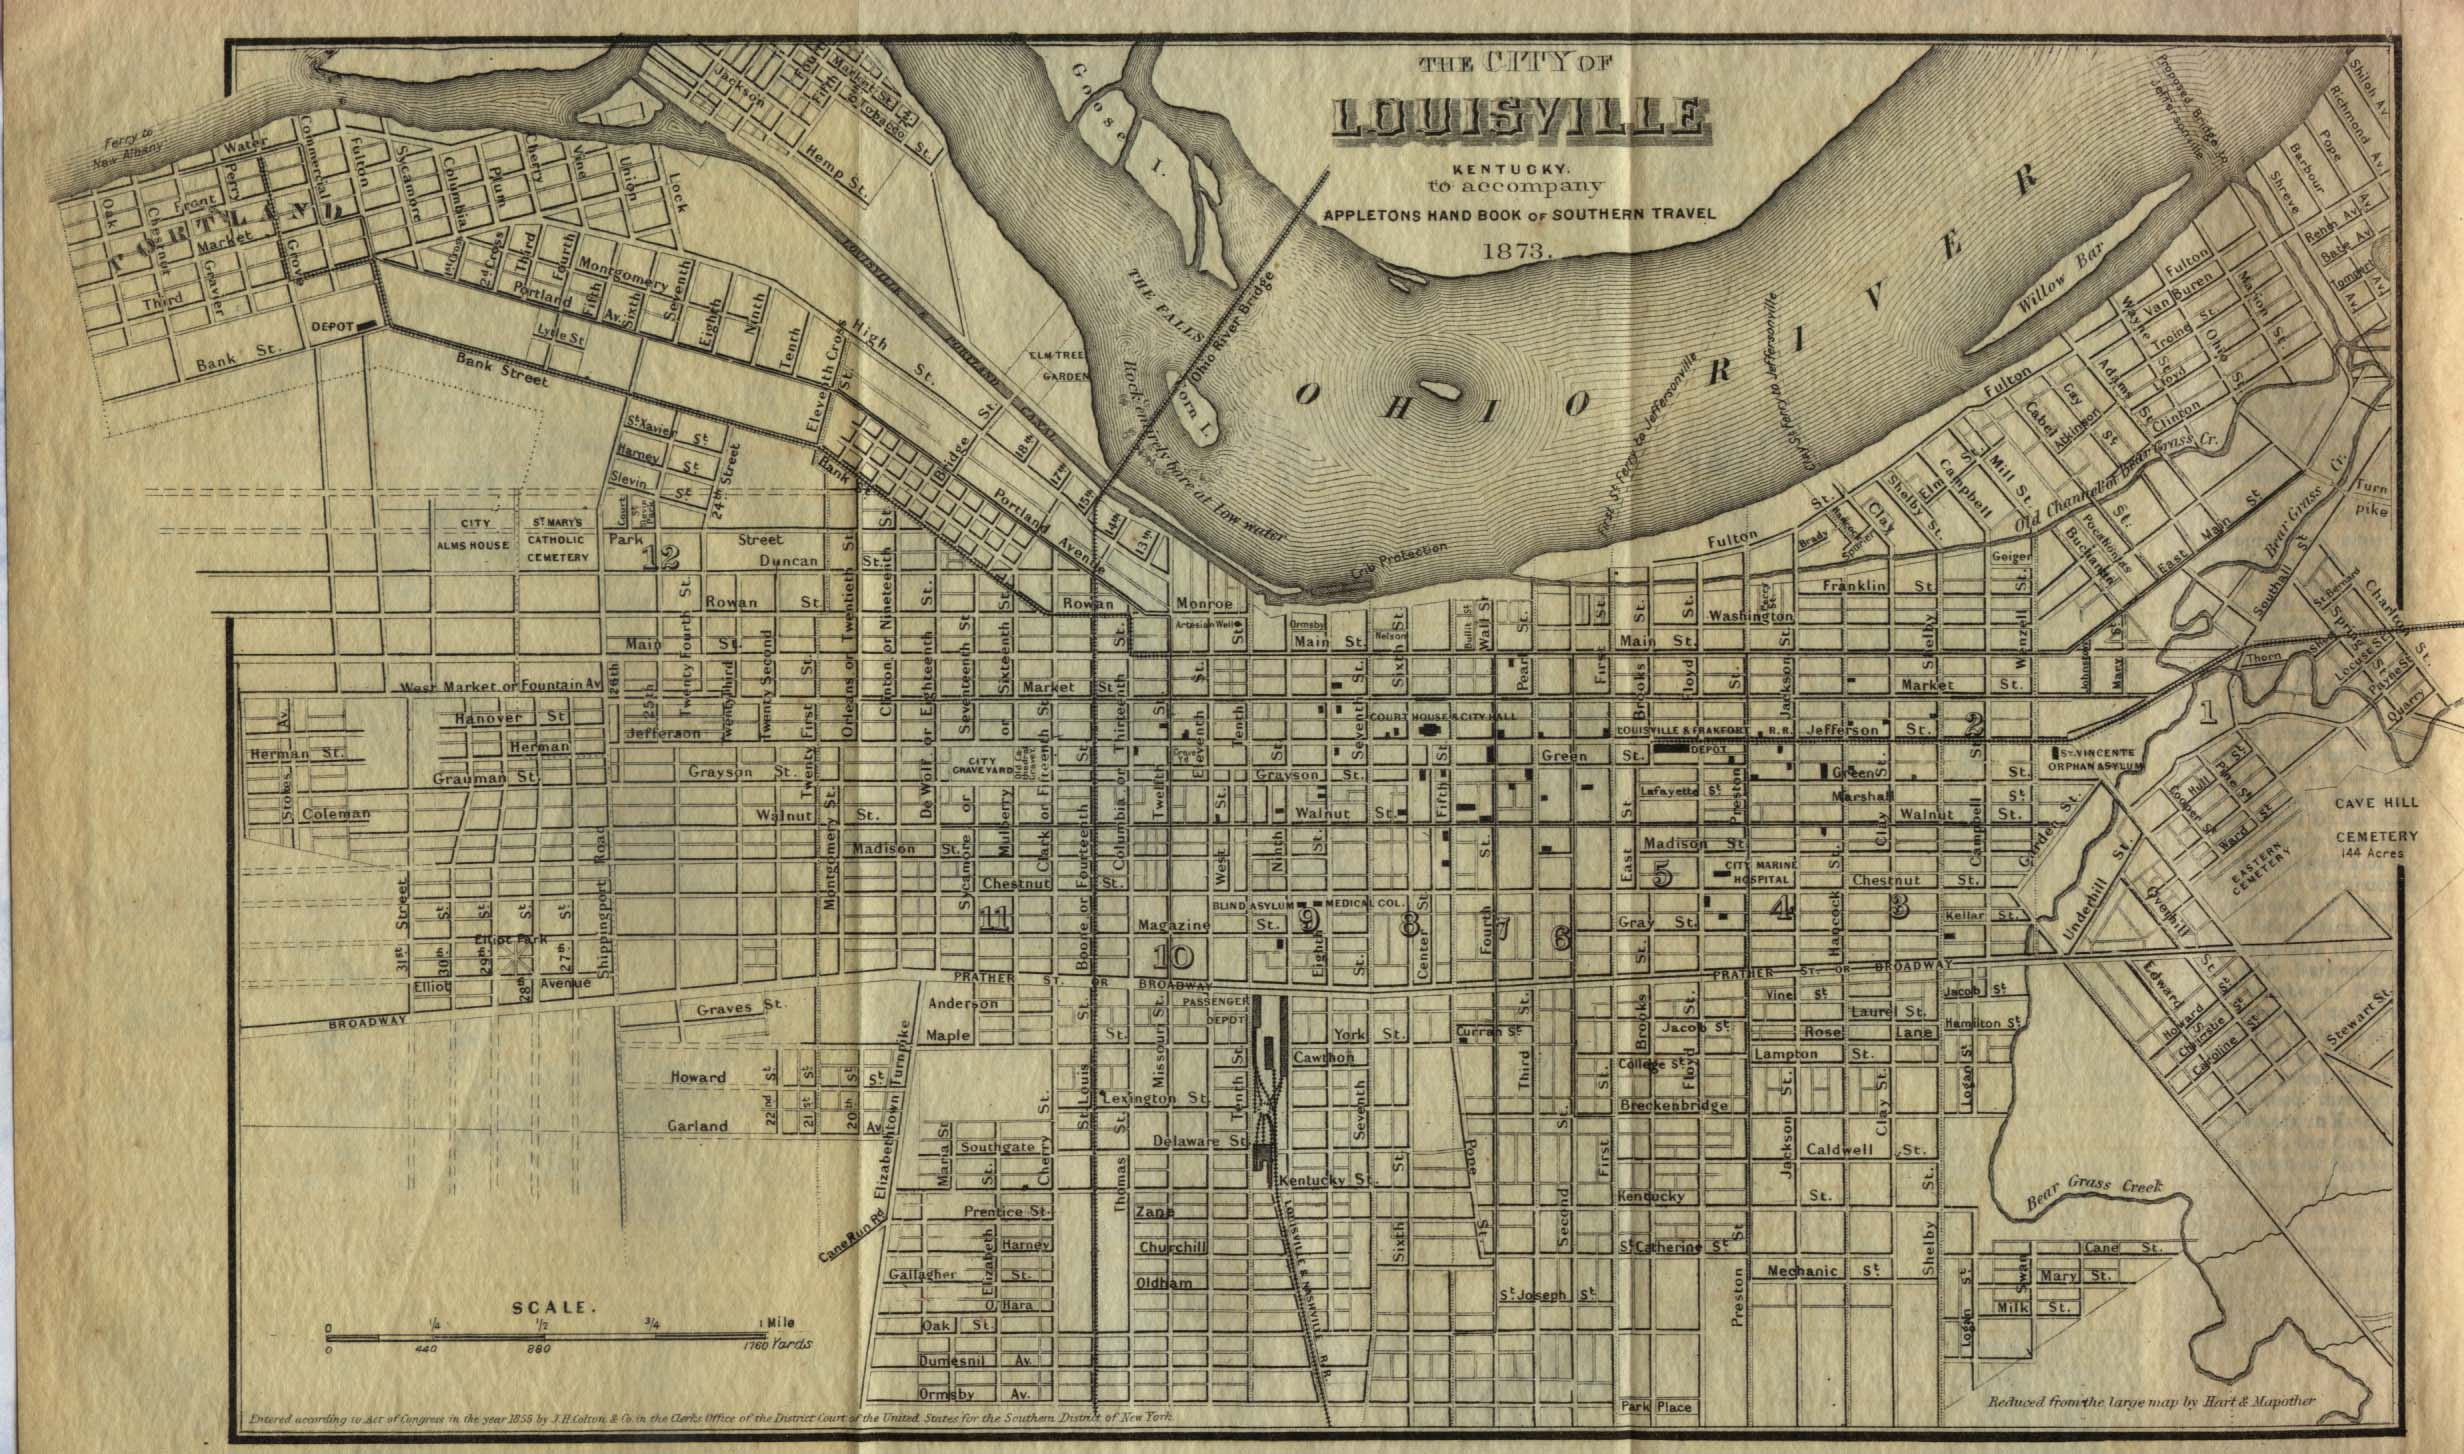 Historical Maps of U.S Cities. Louisville, Kentucky 1855 From Appletons' Hand-Book of American Travel, Southern Tour. Compiled and Edited by Charles H. Jones, 1873 (581K)